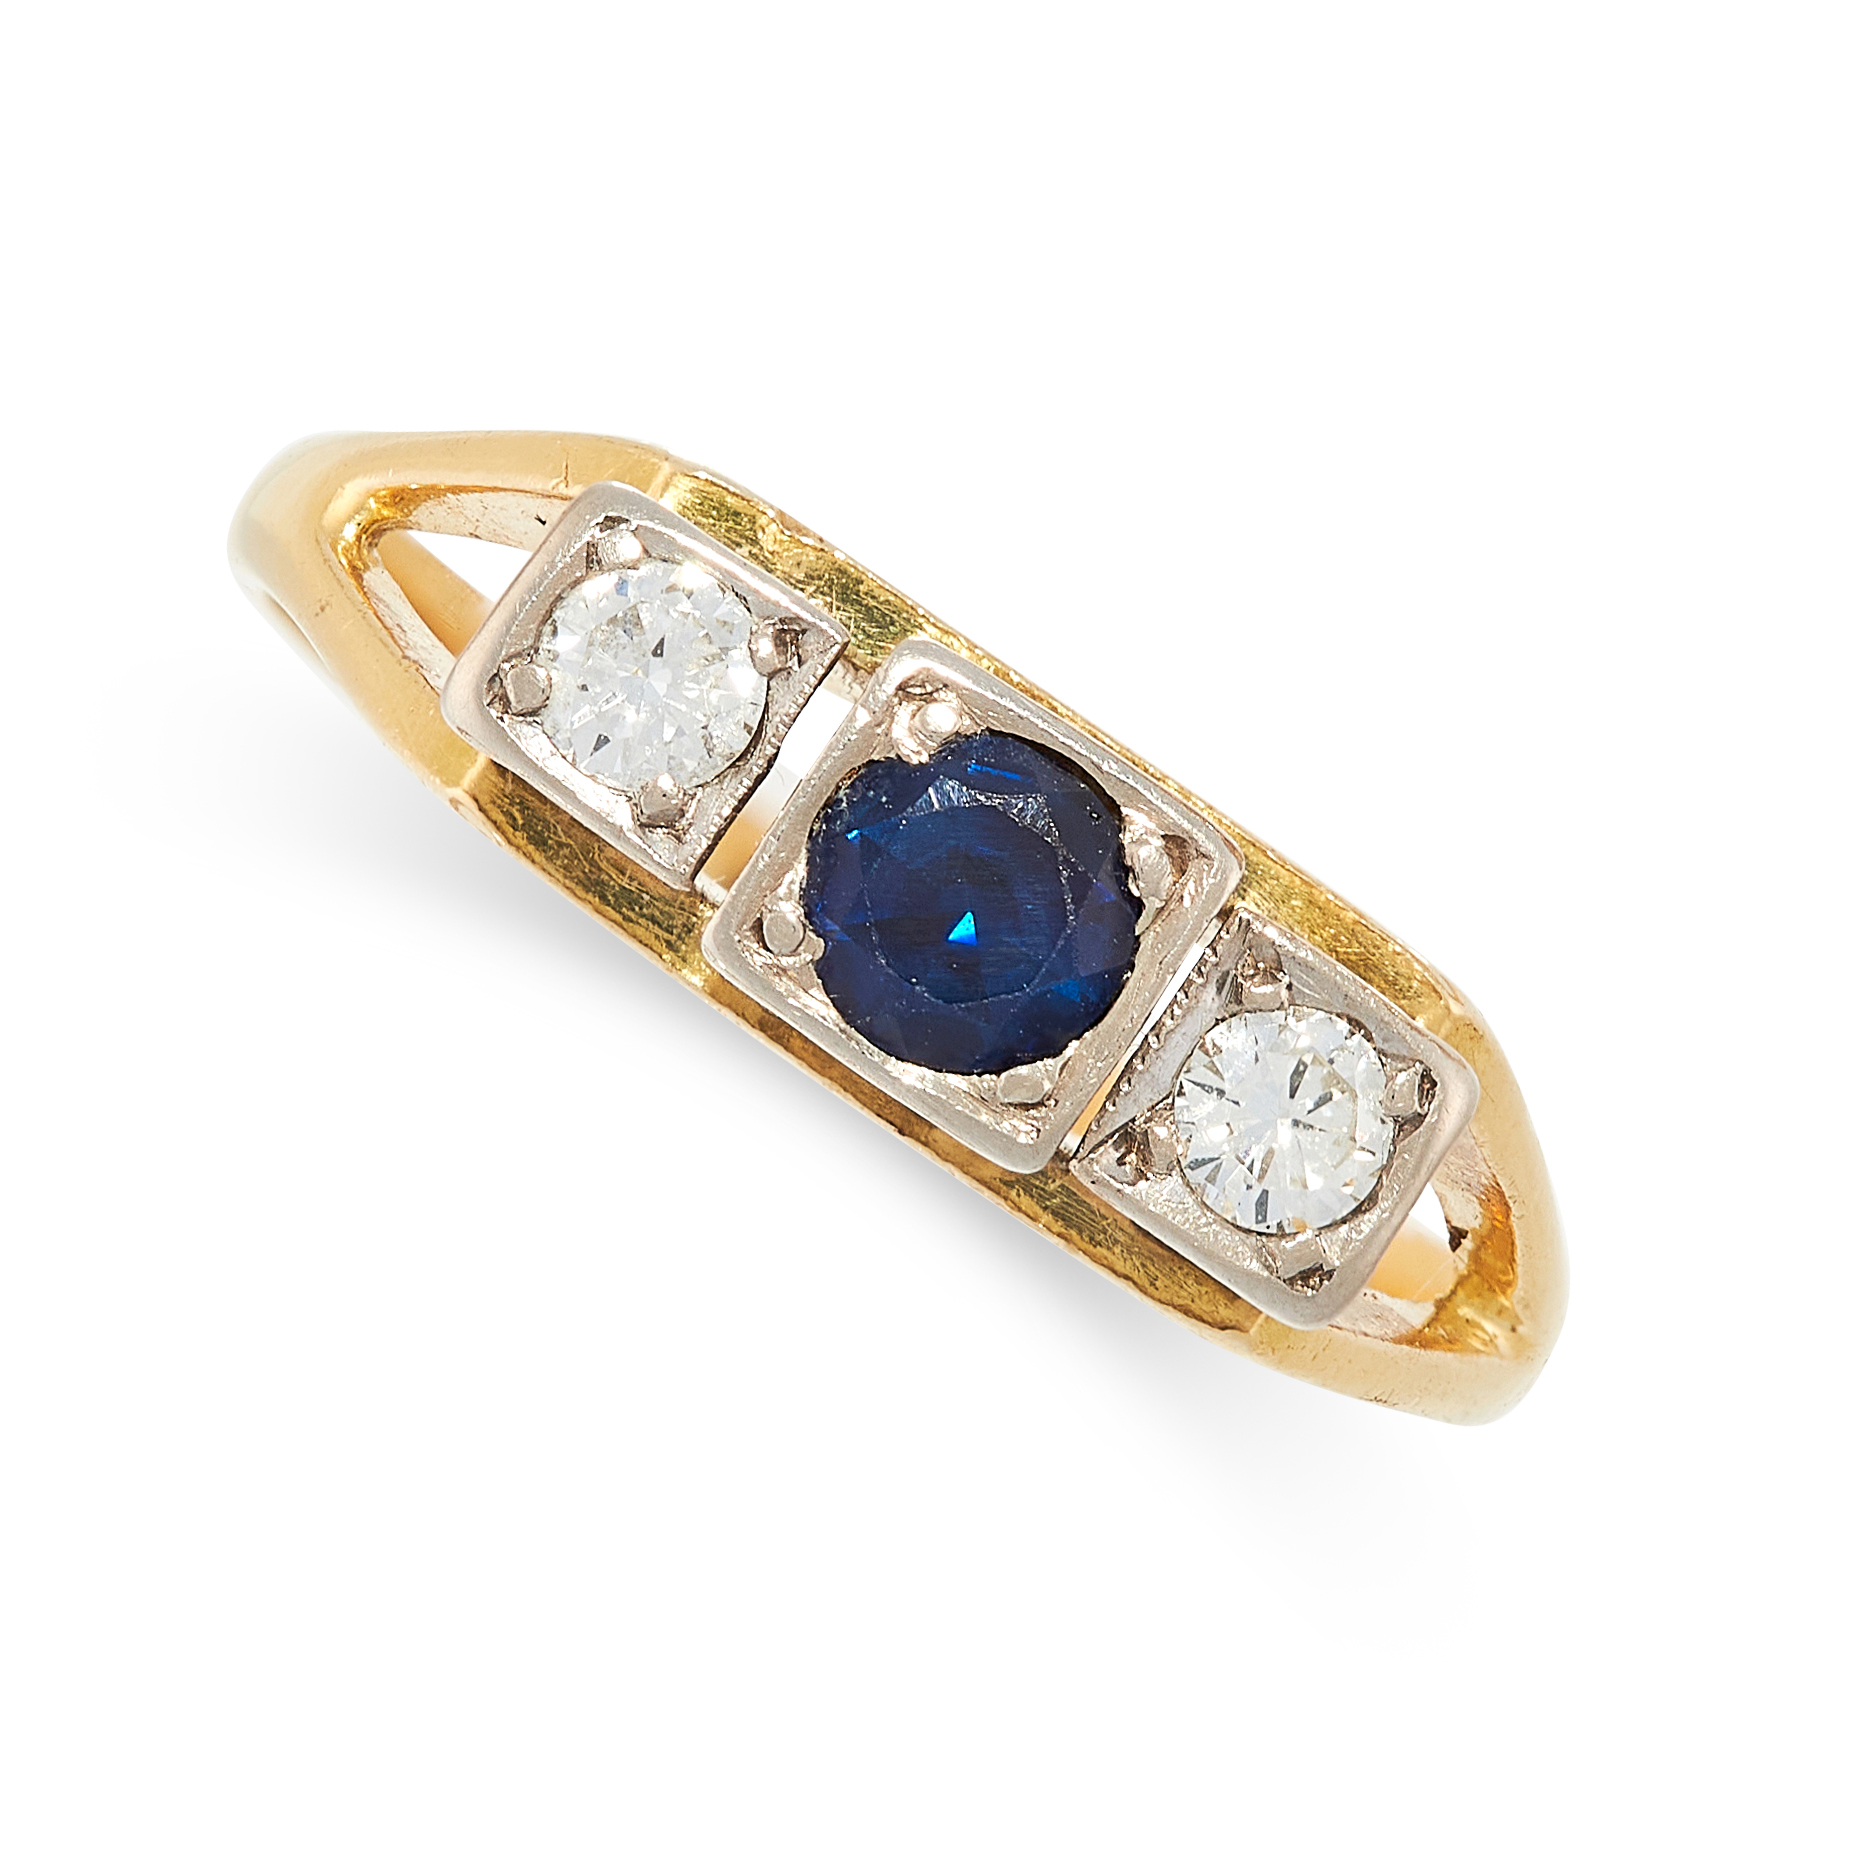 A DIAMOND AND SAPPHIRE RING in 18ct yellow gold, set with a round cut sapphire between two round cut